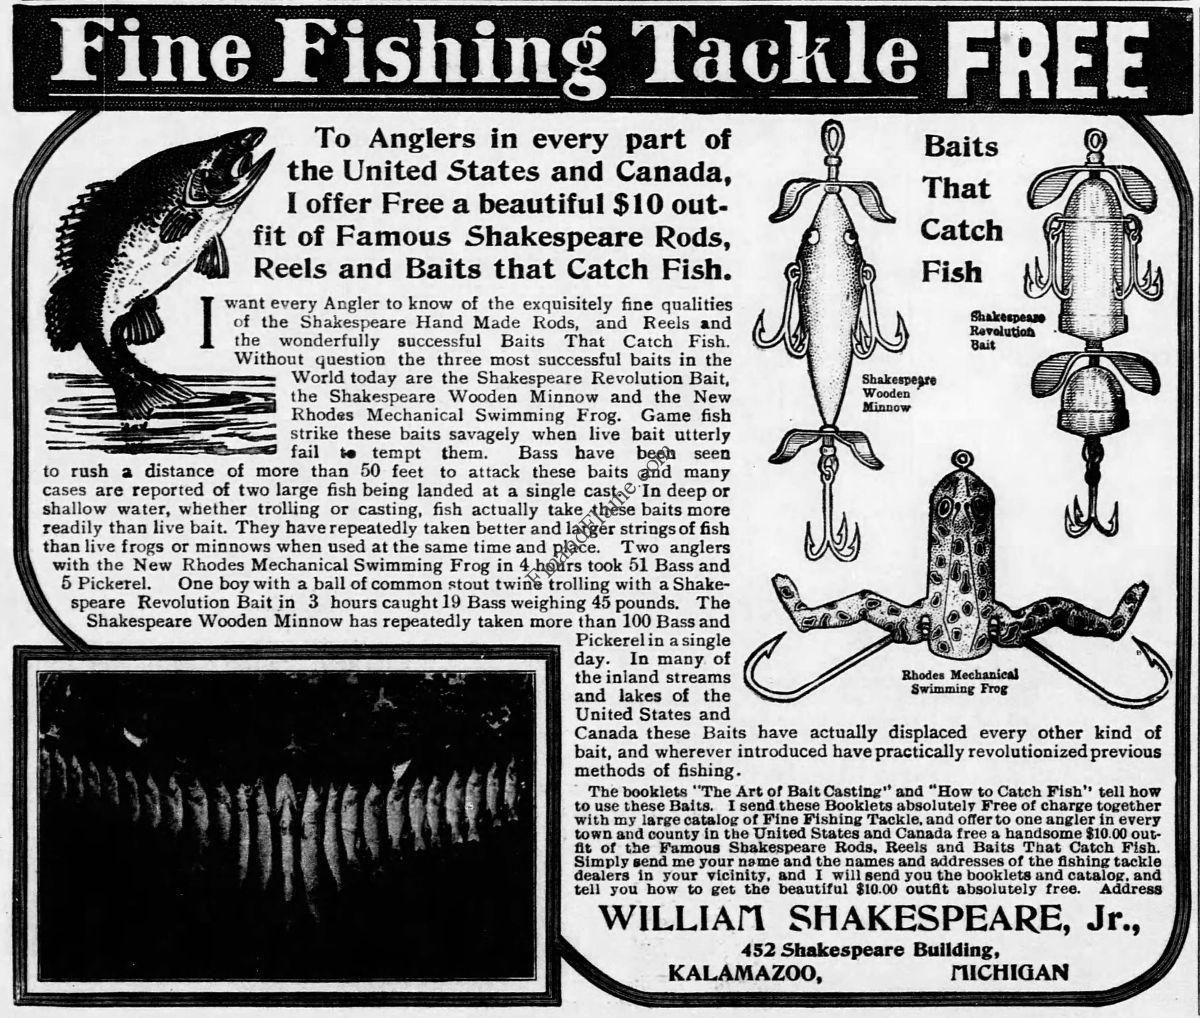 """Shakespeare Antique Lure Ad 1906 - http://www.finandflame.com/shakespeare-antique-lure-ad-1906/ - #Baits, #Bass, #Fishing, #Lure, #Revolution, #Shakespeare, #ShakespeareAntiqueLureAd1906, #WoodenMinnow - Shakespeare Antique Lure Ad 1906 ThisShakespeare Antique lure Ad 1906 was taken from """"The Evening Star"""" newspaper and shows us the New addition of the Rhodes Mechanical Swimming Frog to its Artificial bait arsenal. The ad illustrates the Shakespeare Revolution,"""